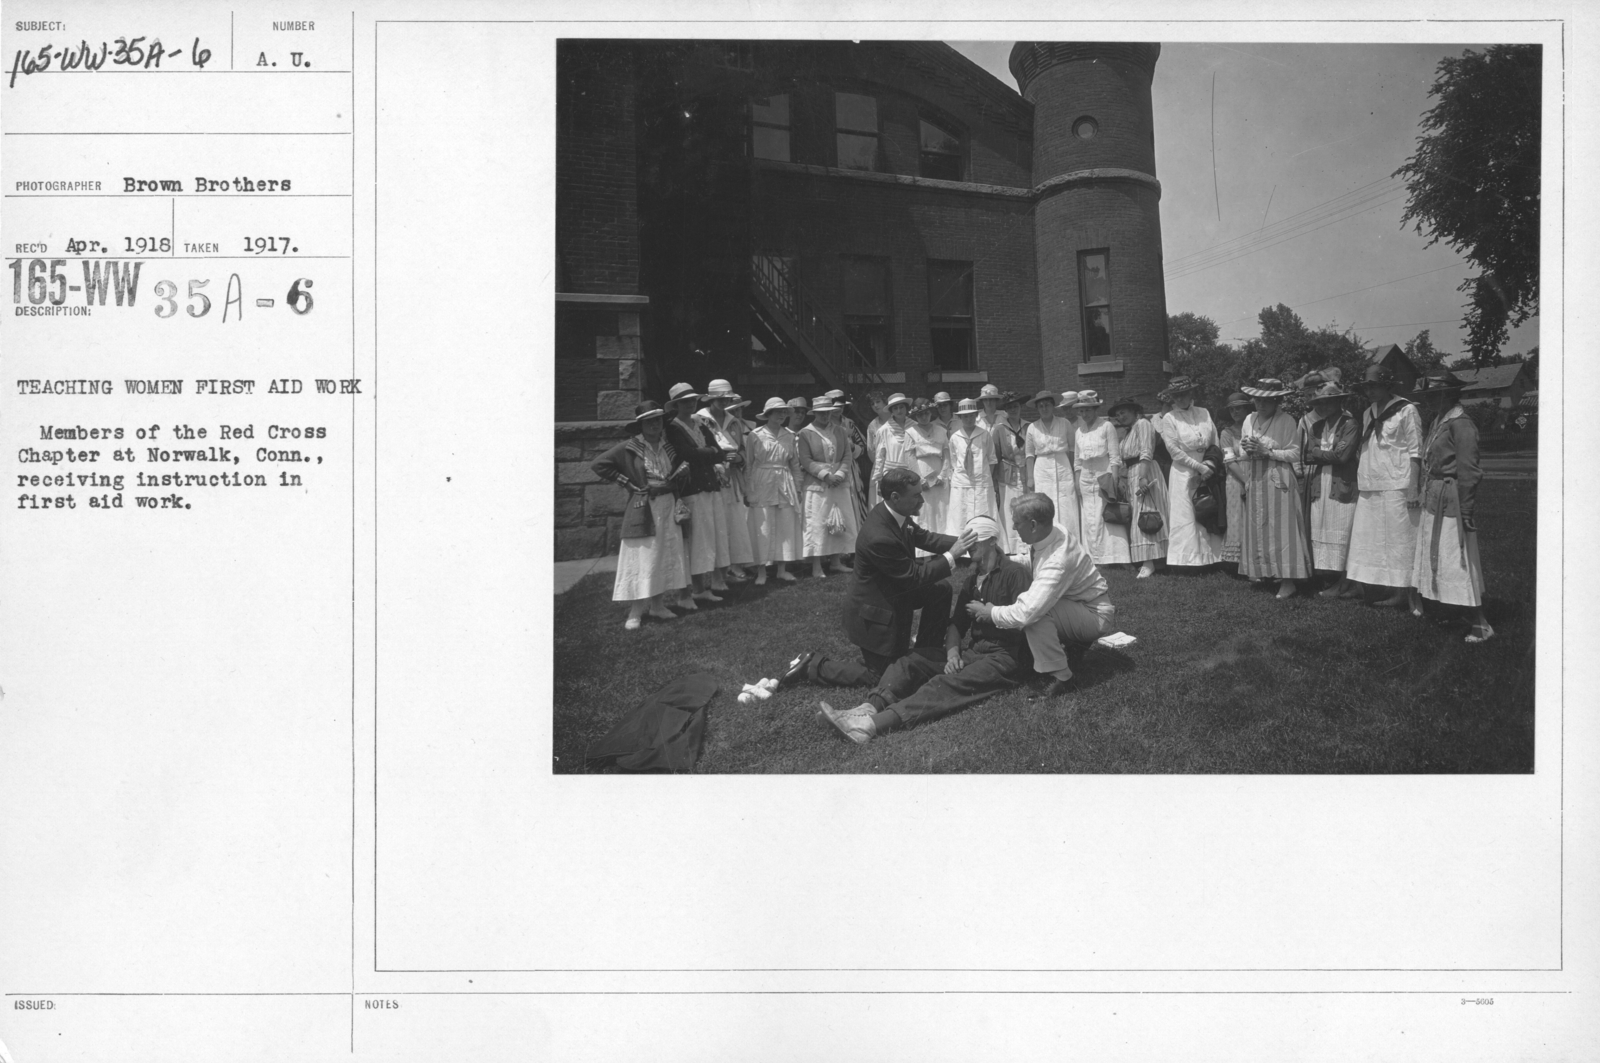 American Red Cross - Classes in Red Cross Work - Teaching women first aid work. Members of the Red Cross Chapter at Norwalk, Conn., receiving instruction in first aid work